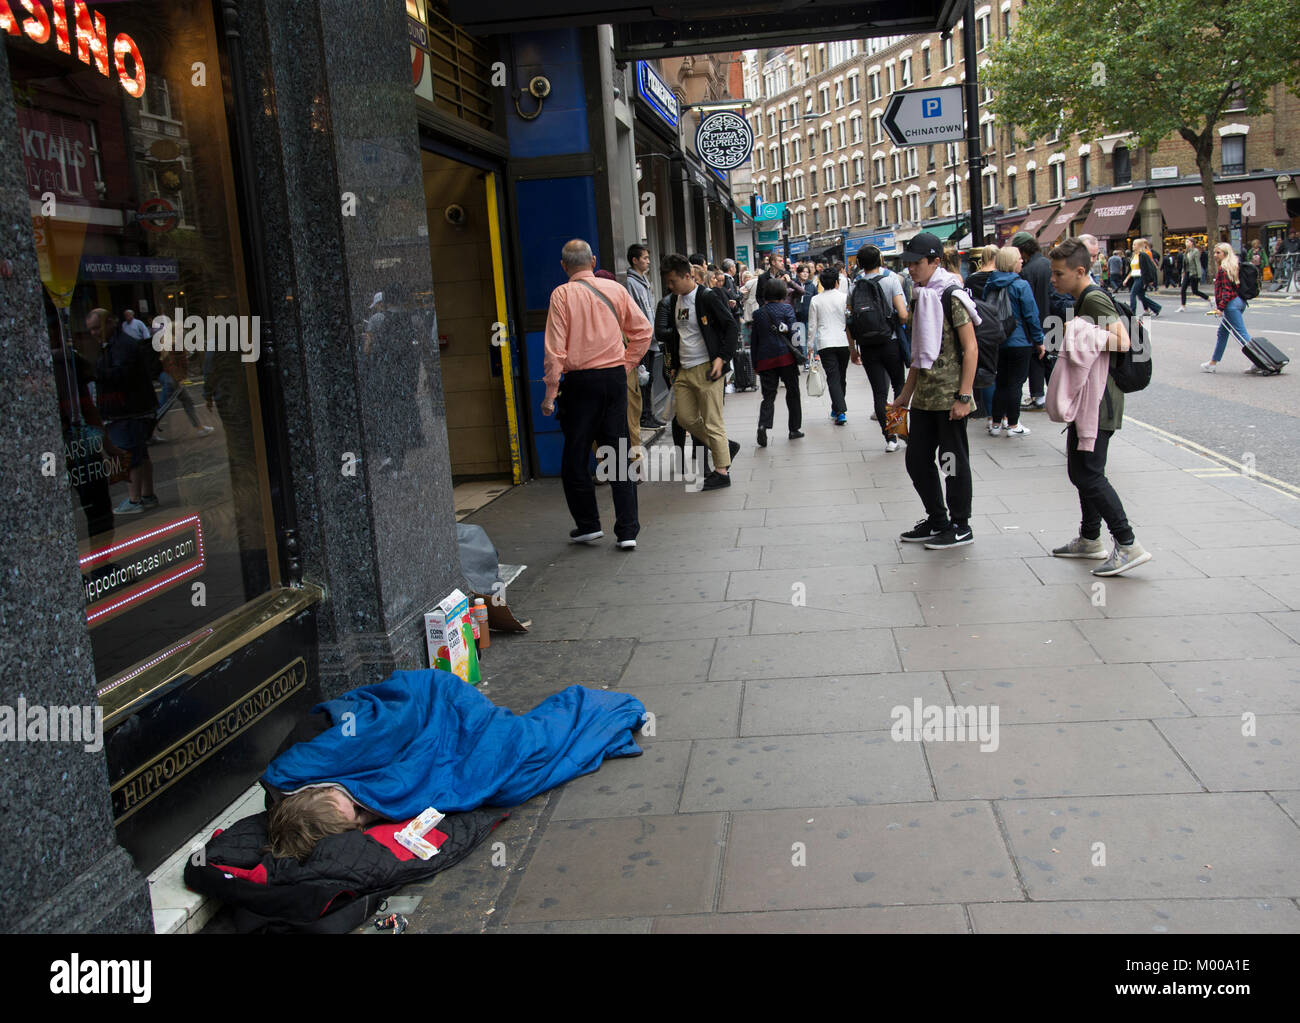 A homeless person sleeps on the pavement right outside the Leicester Square tube station on Charing Cross road in - Stock Image